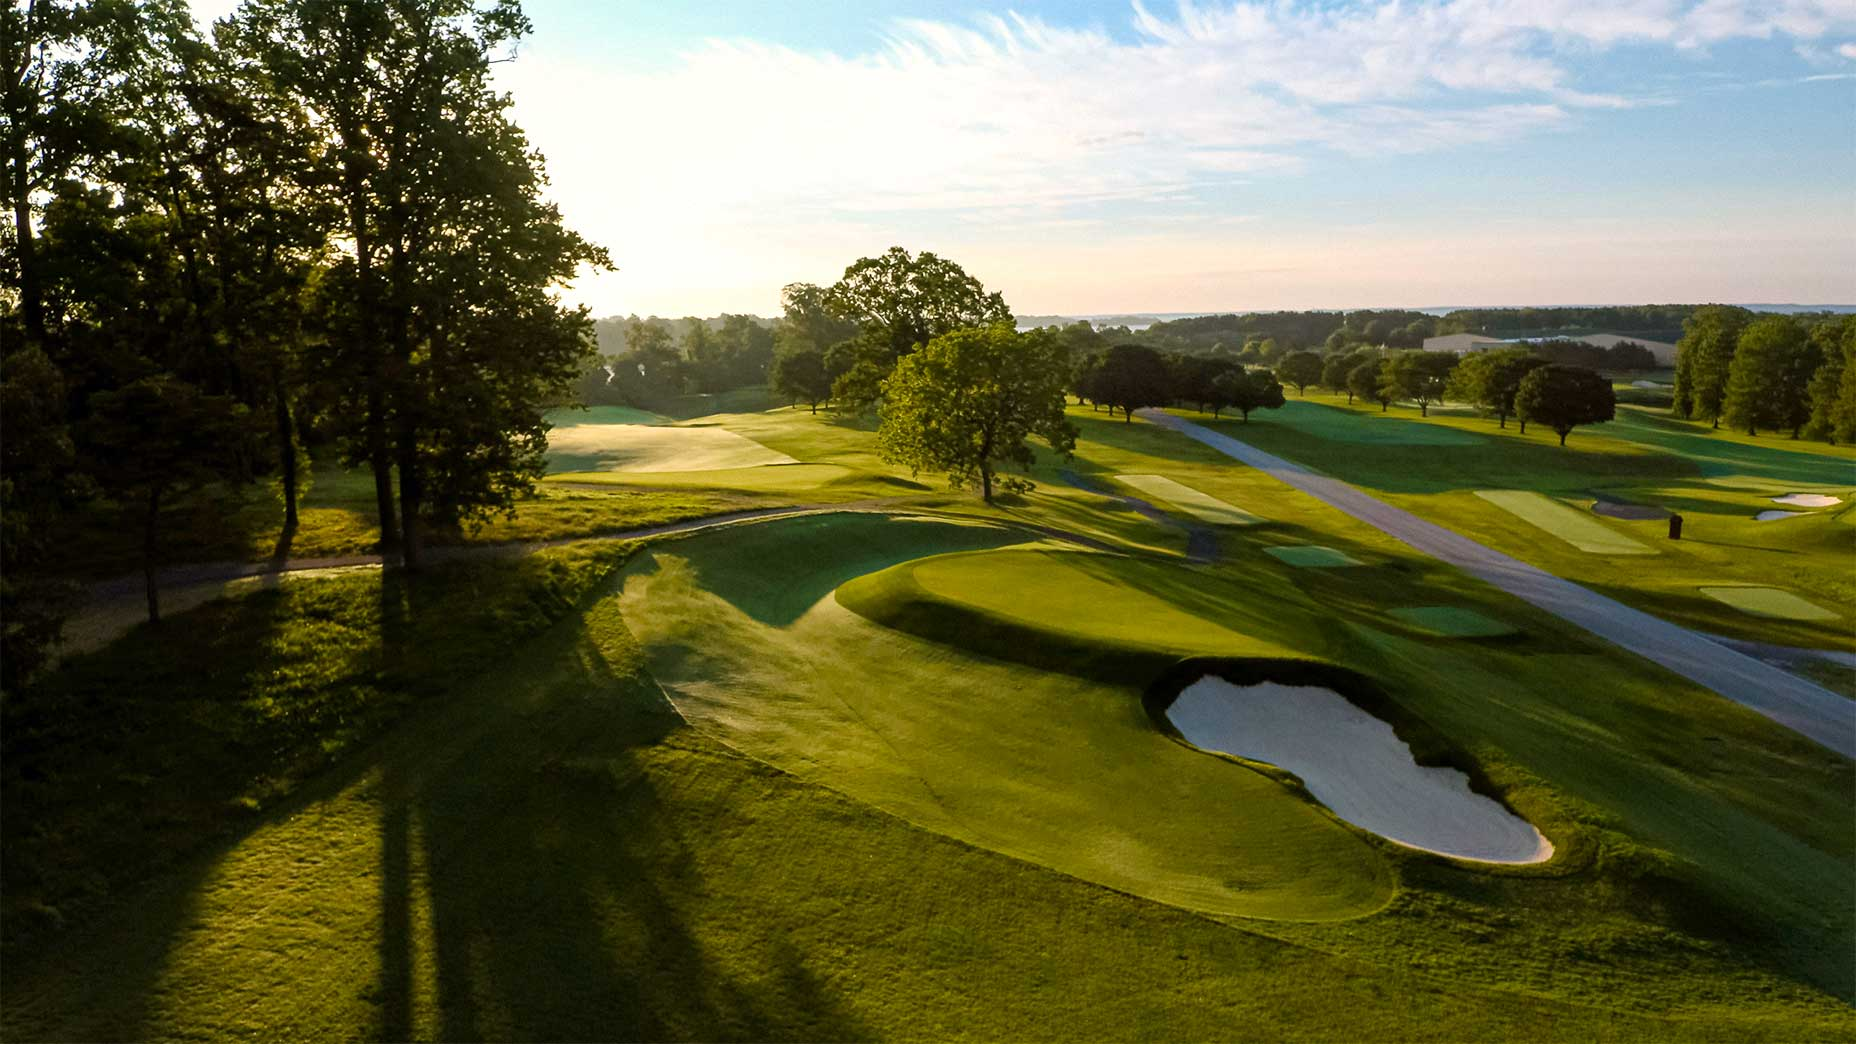 The Navy Academy Golf Course in Maryland.